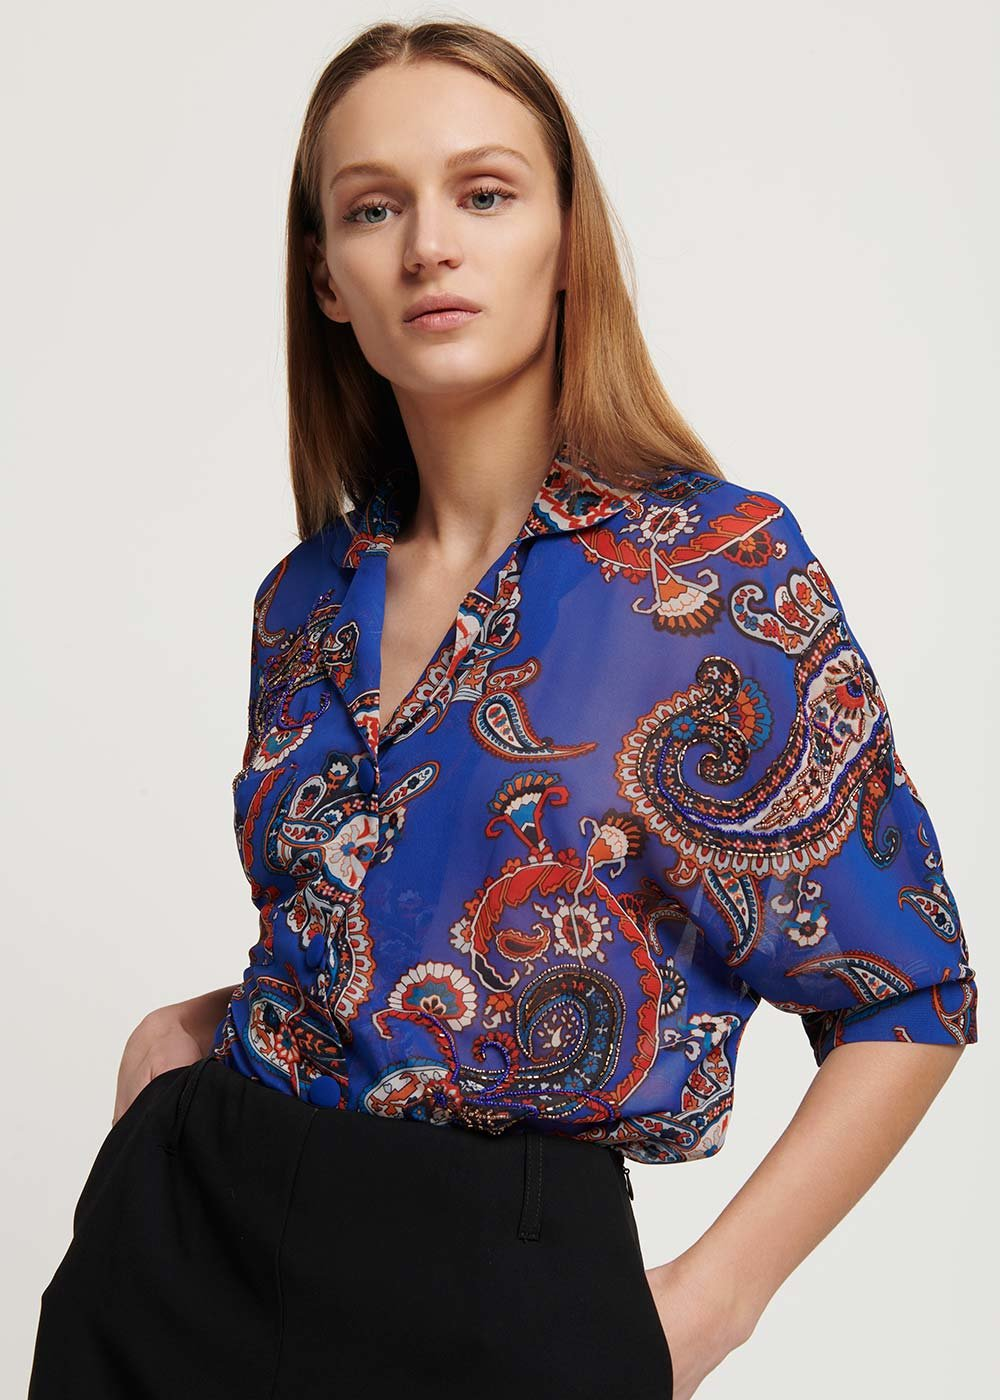 Cabryl patterned shirt - Nettuno \ Sole \ Fantasia - Woman